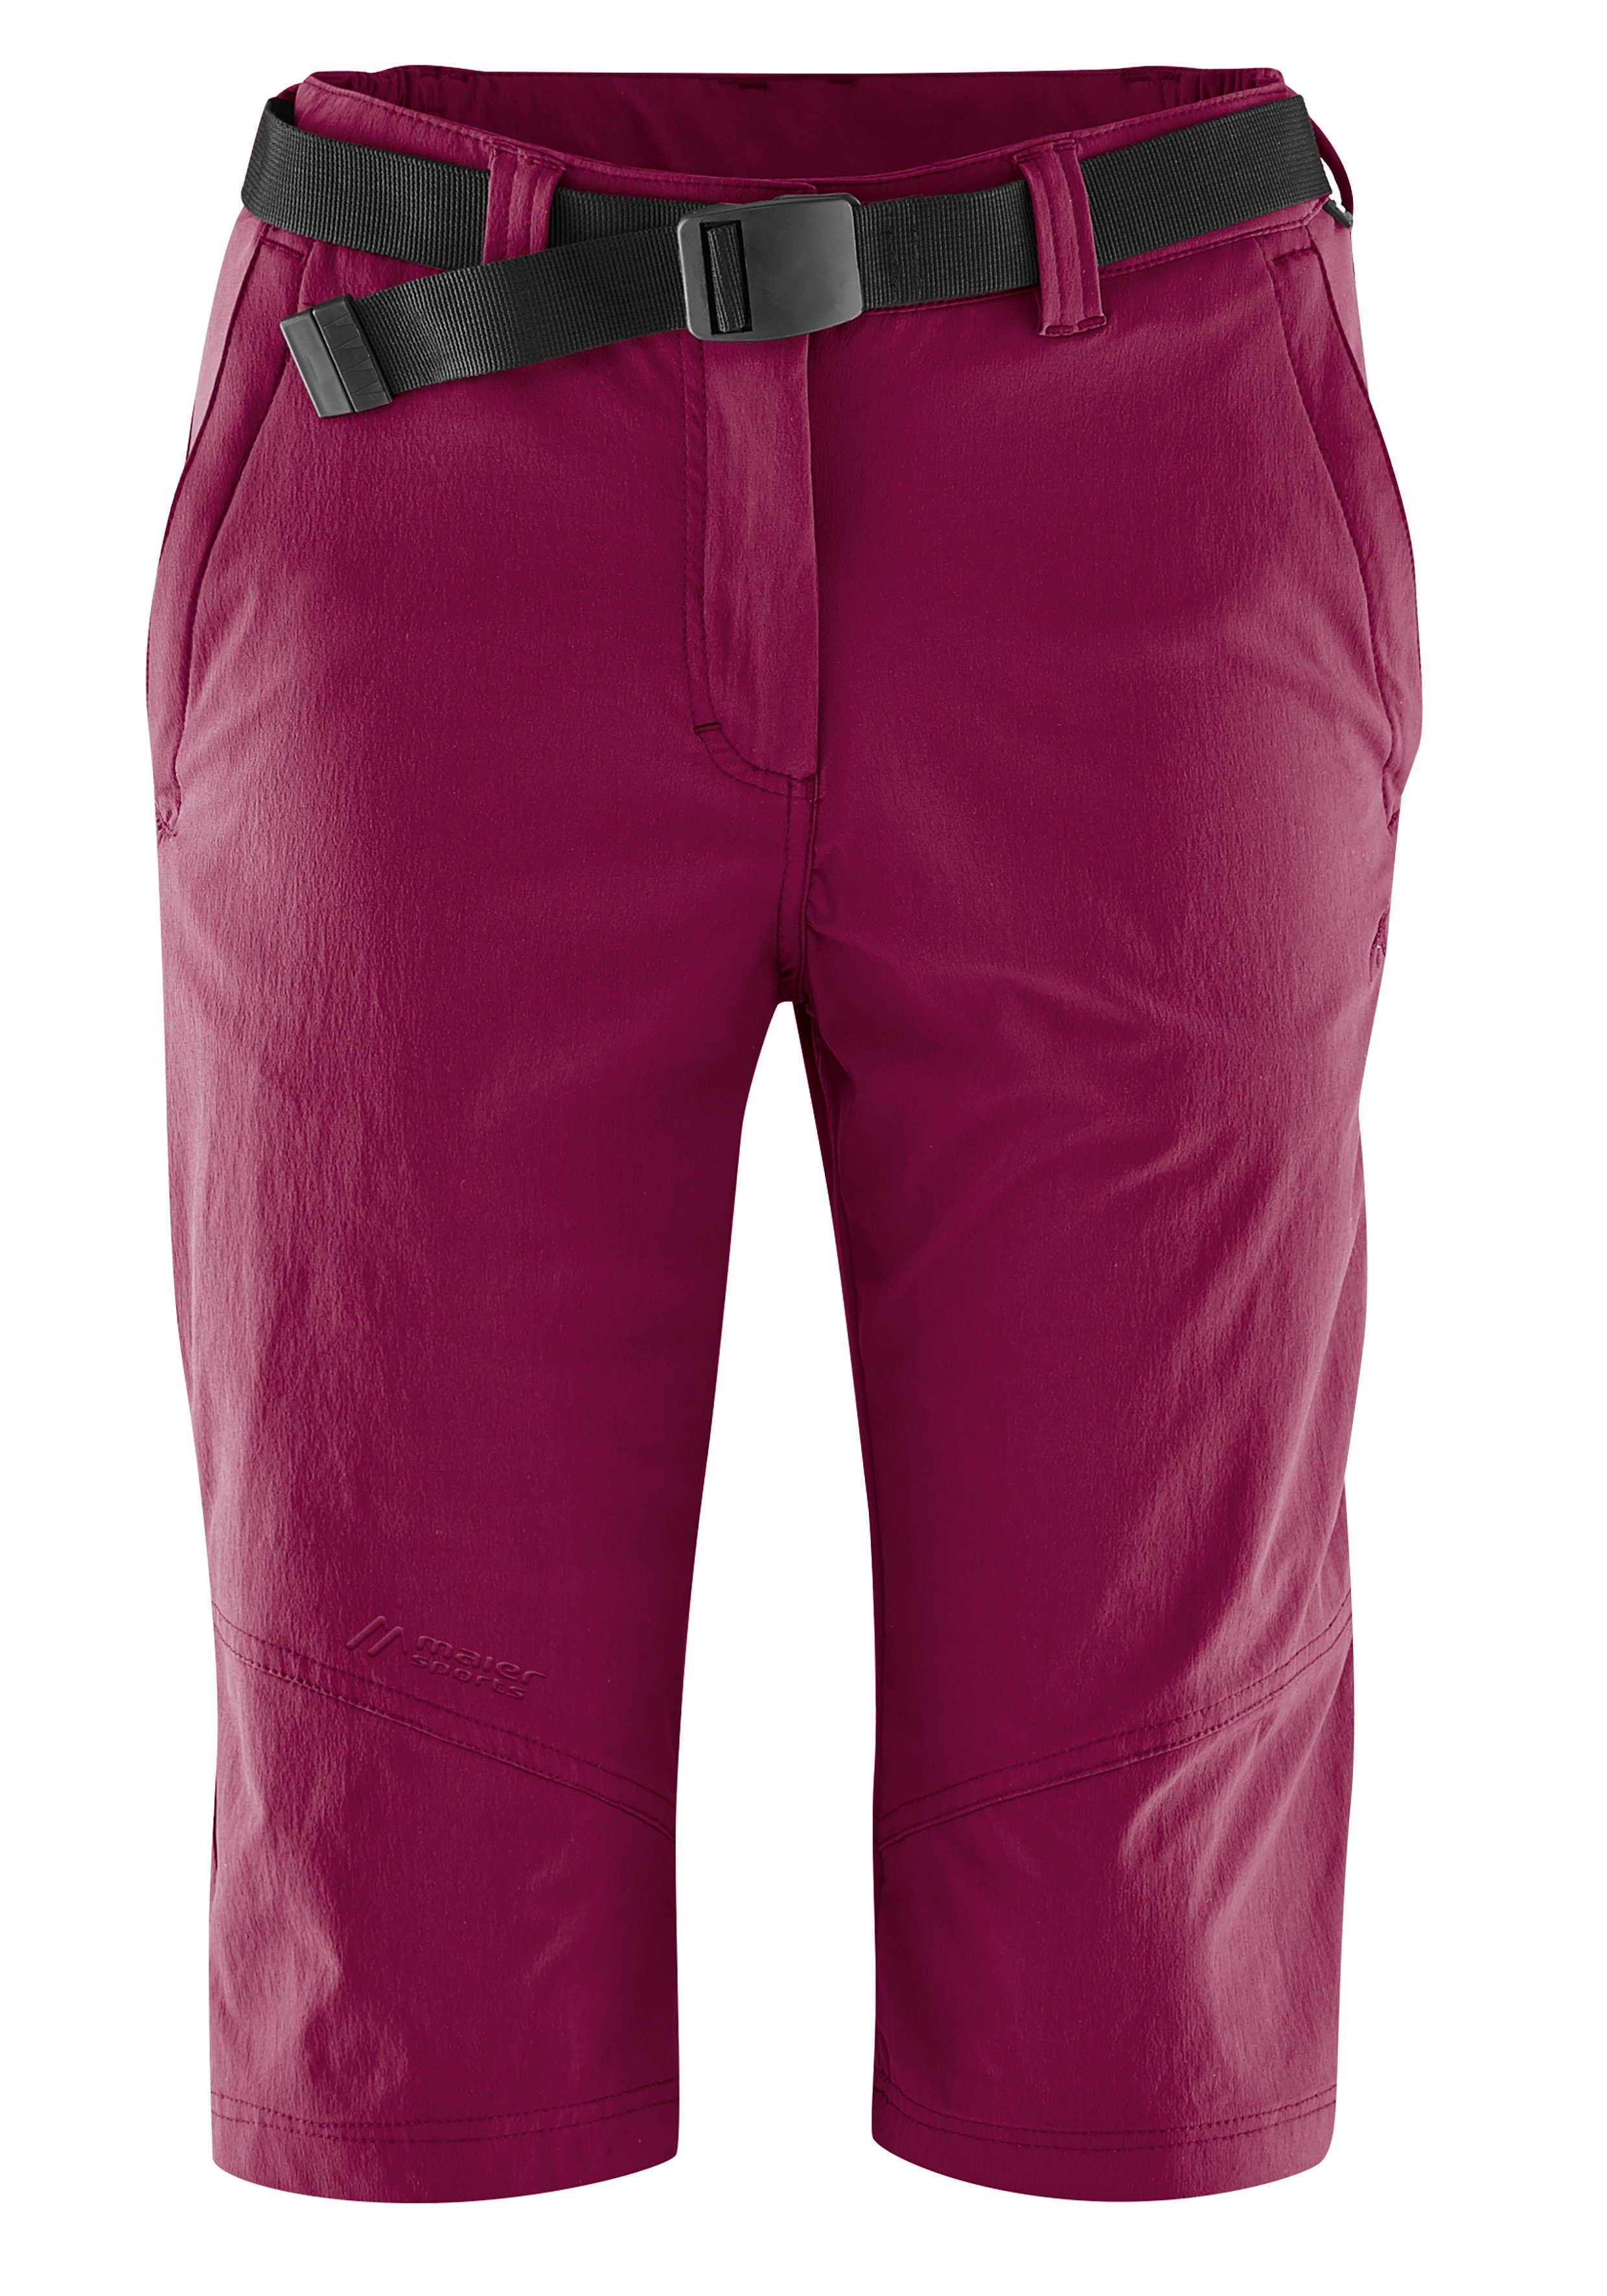 Maier Sports Funktionsshorts Lawa   Sportbekleidung > Sporthosen > Sportshorts   Rot   Maier Sports